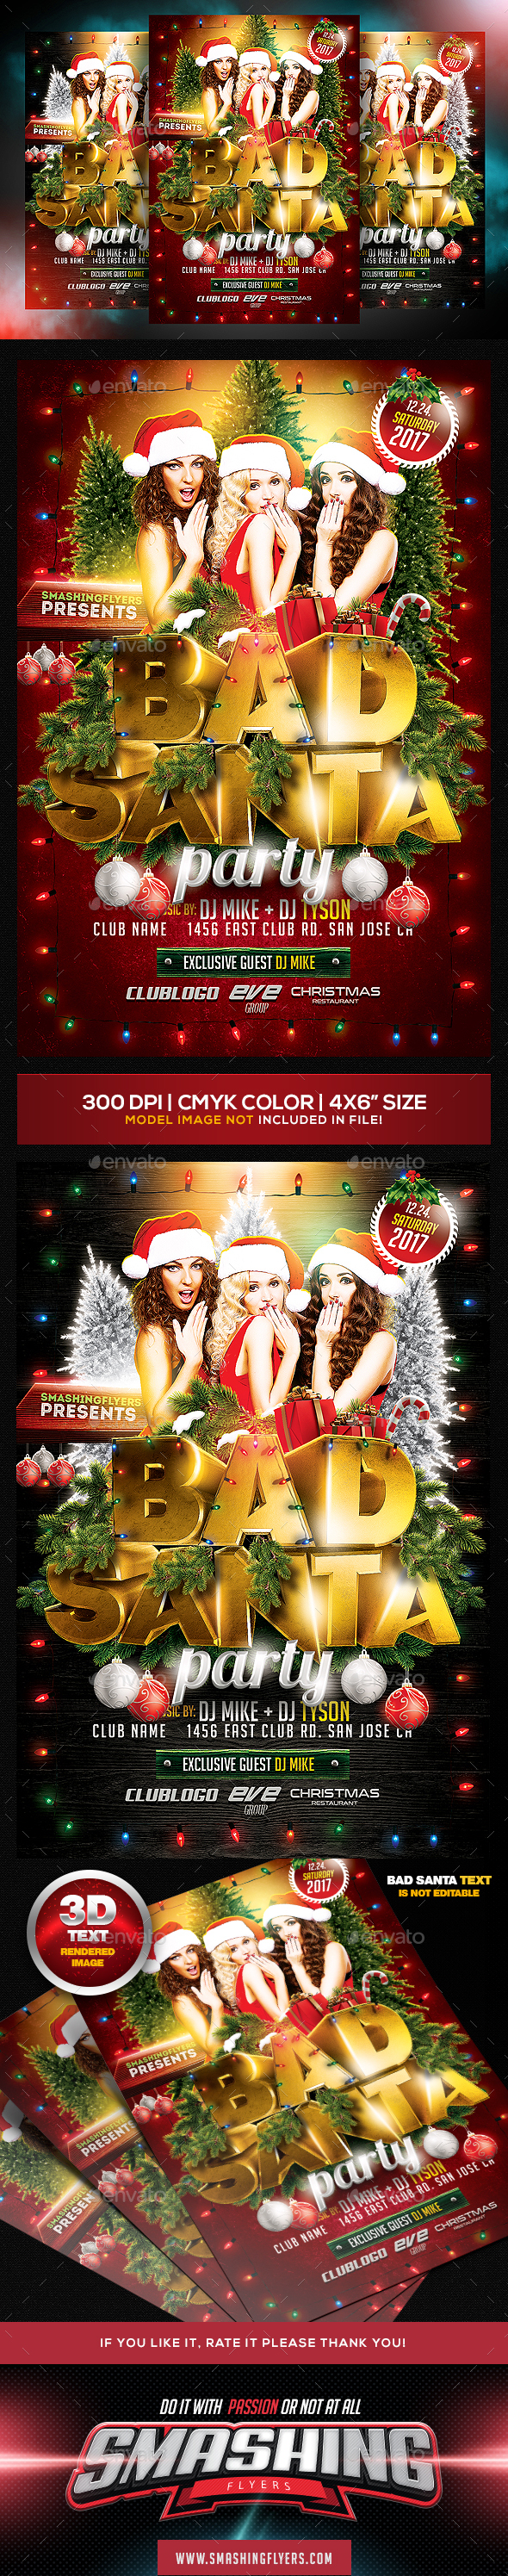 Bad Santa Christmas Party Flyer